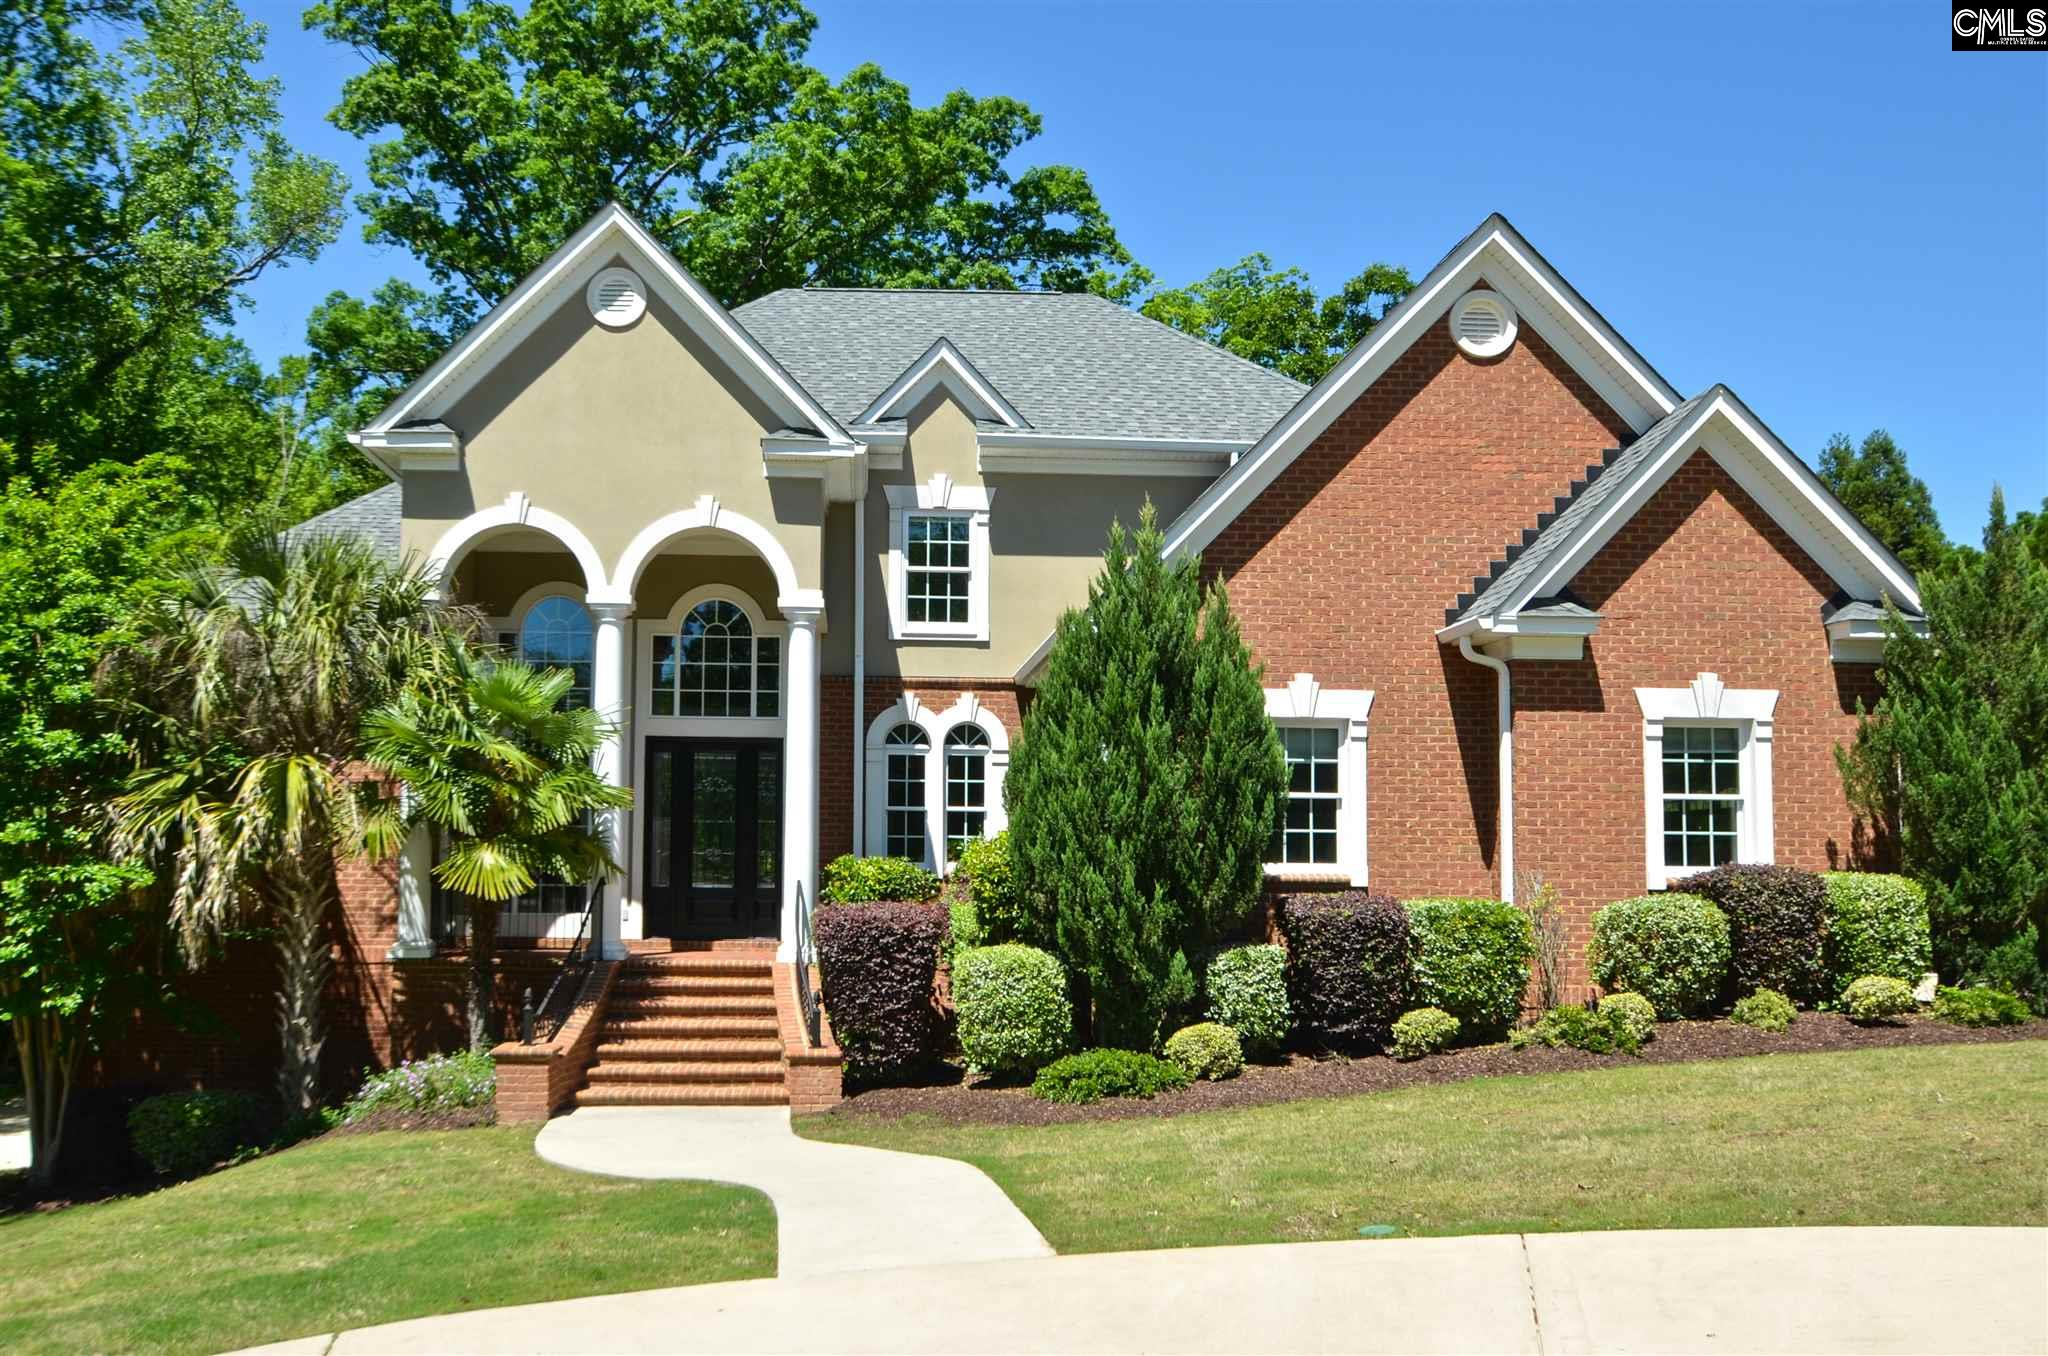 111 Silver Wing West Columbia, SC 29169